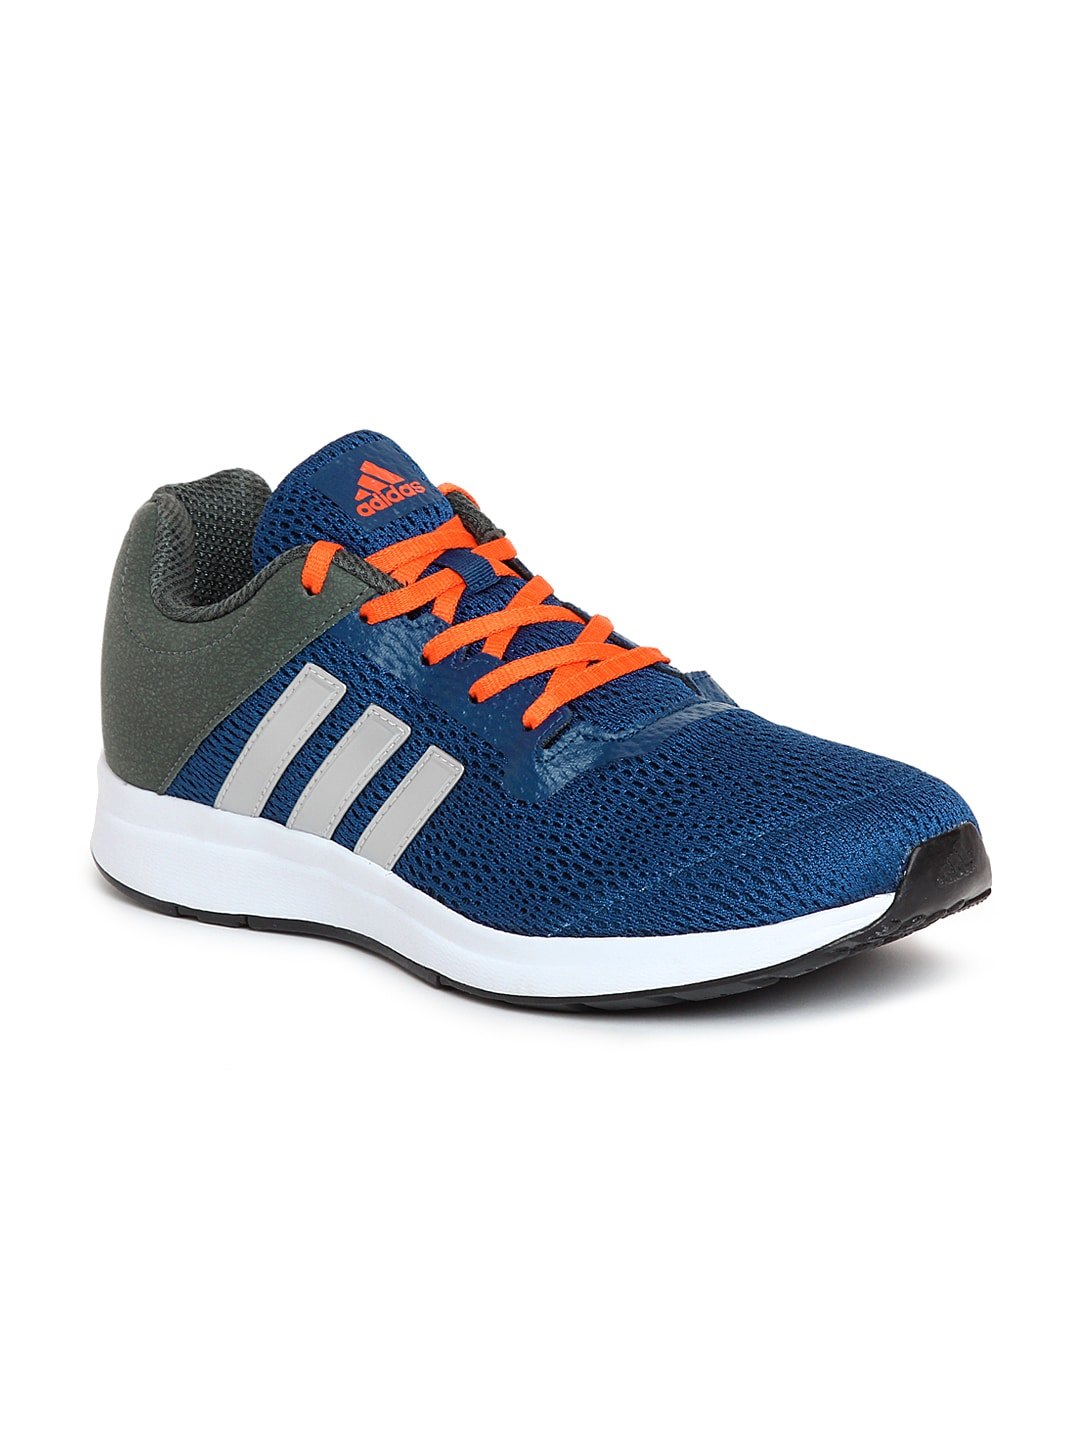 detailed look f0aaa 3fe6b Men NEBULAR 1.0 Running Shoes · ADIDAS